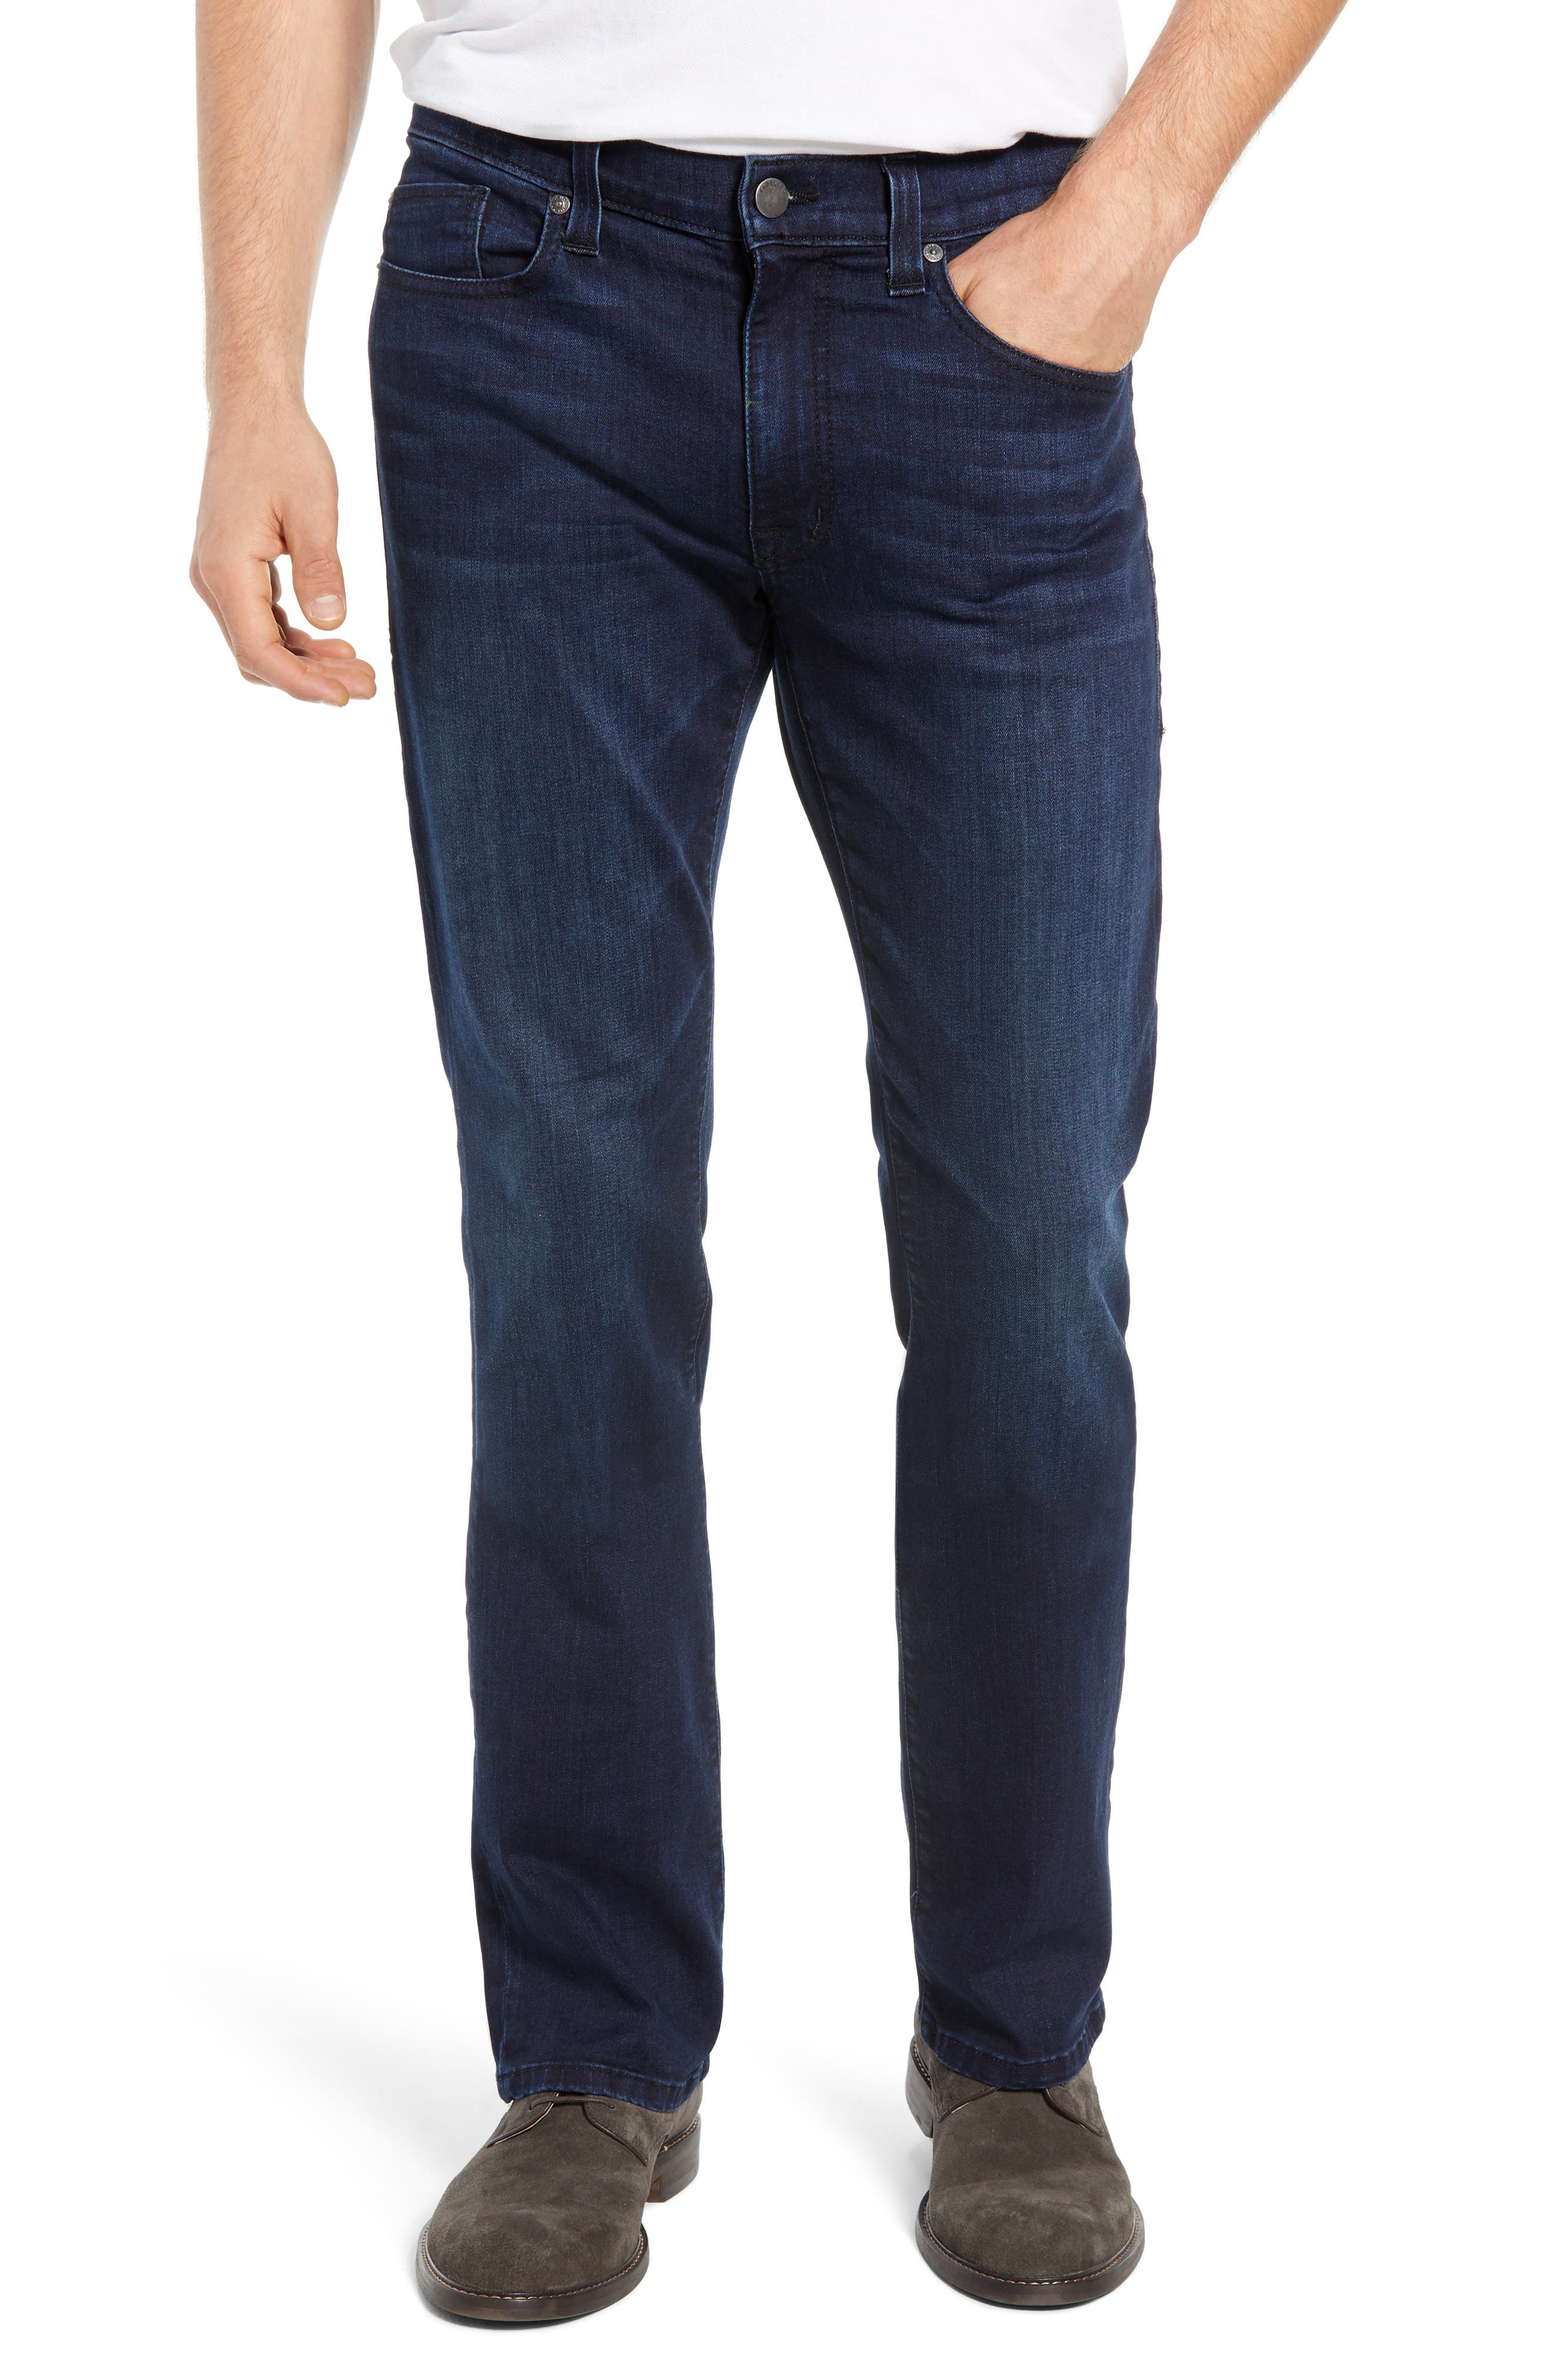 Men's Relaxed Fit Jeans | Nordstrom